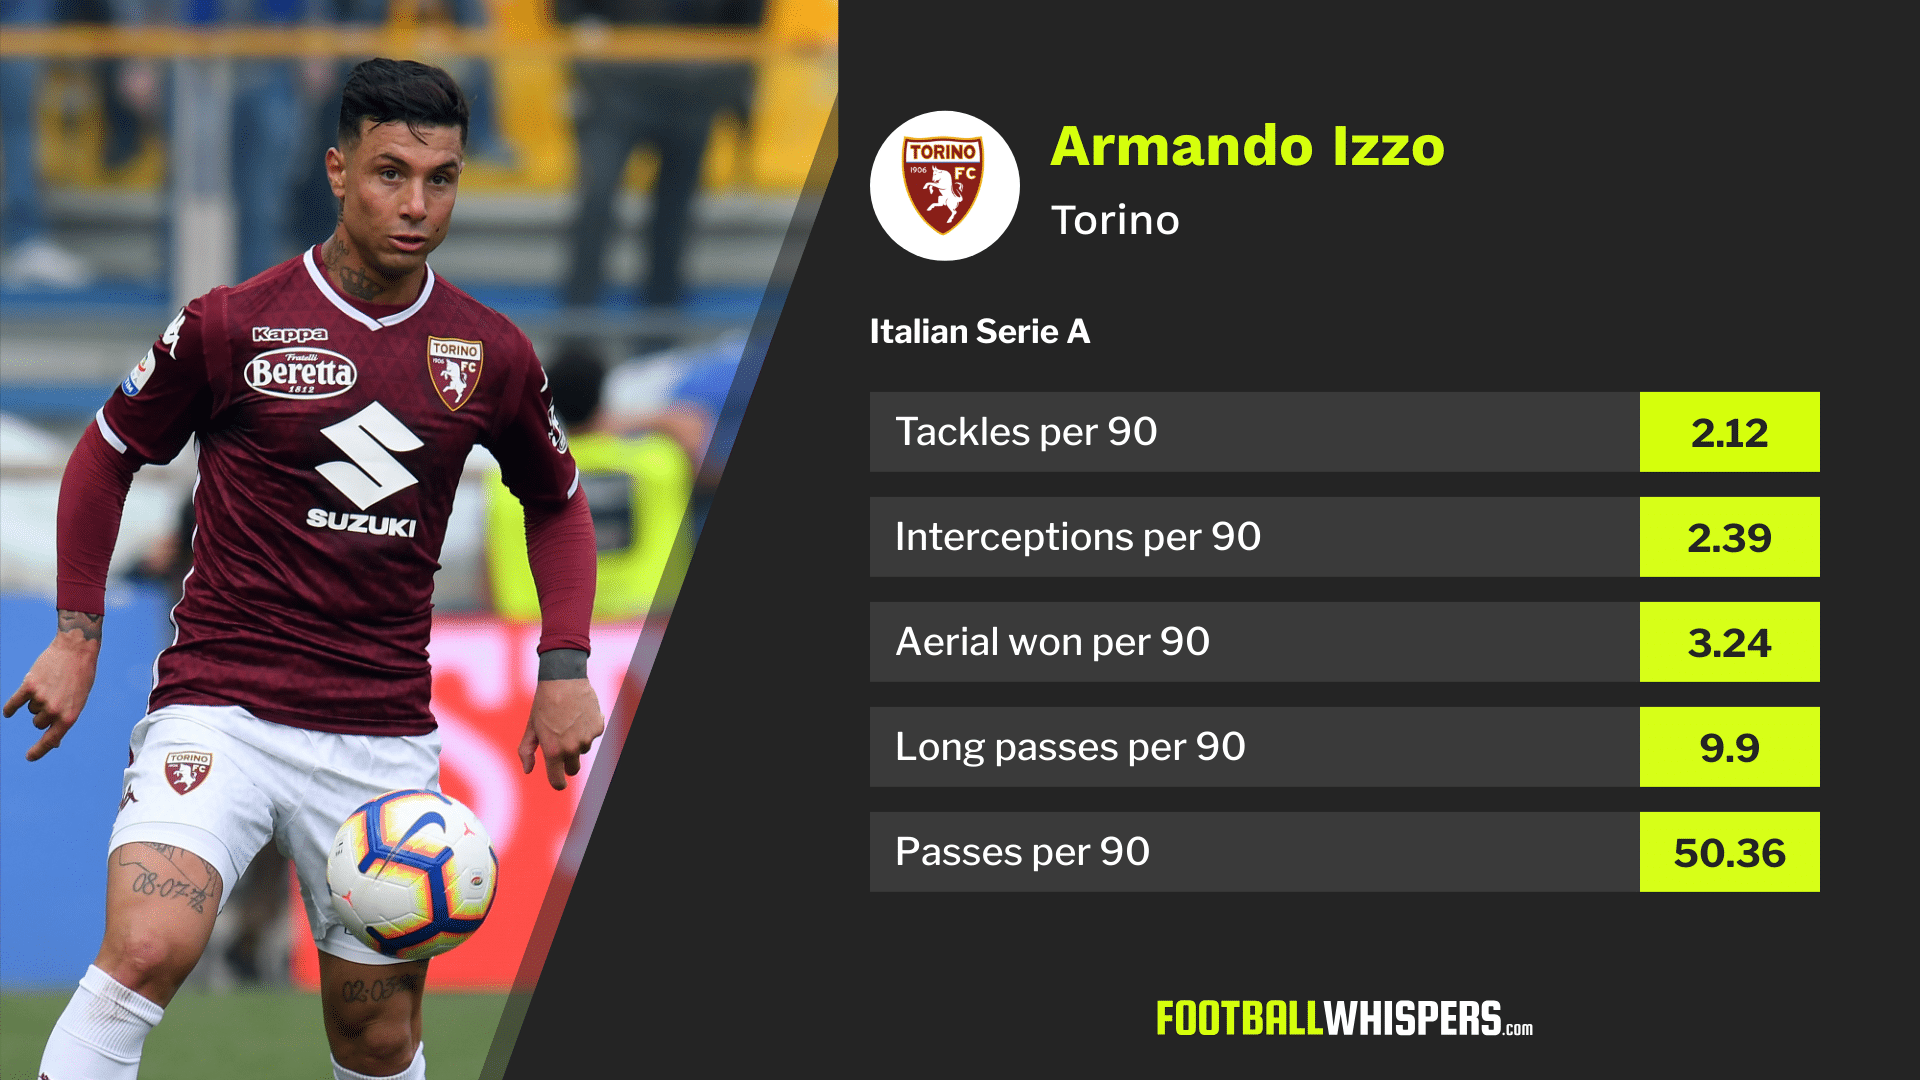 Could Armando Izzo of Torino be an Arsenal transfer target?